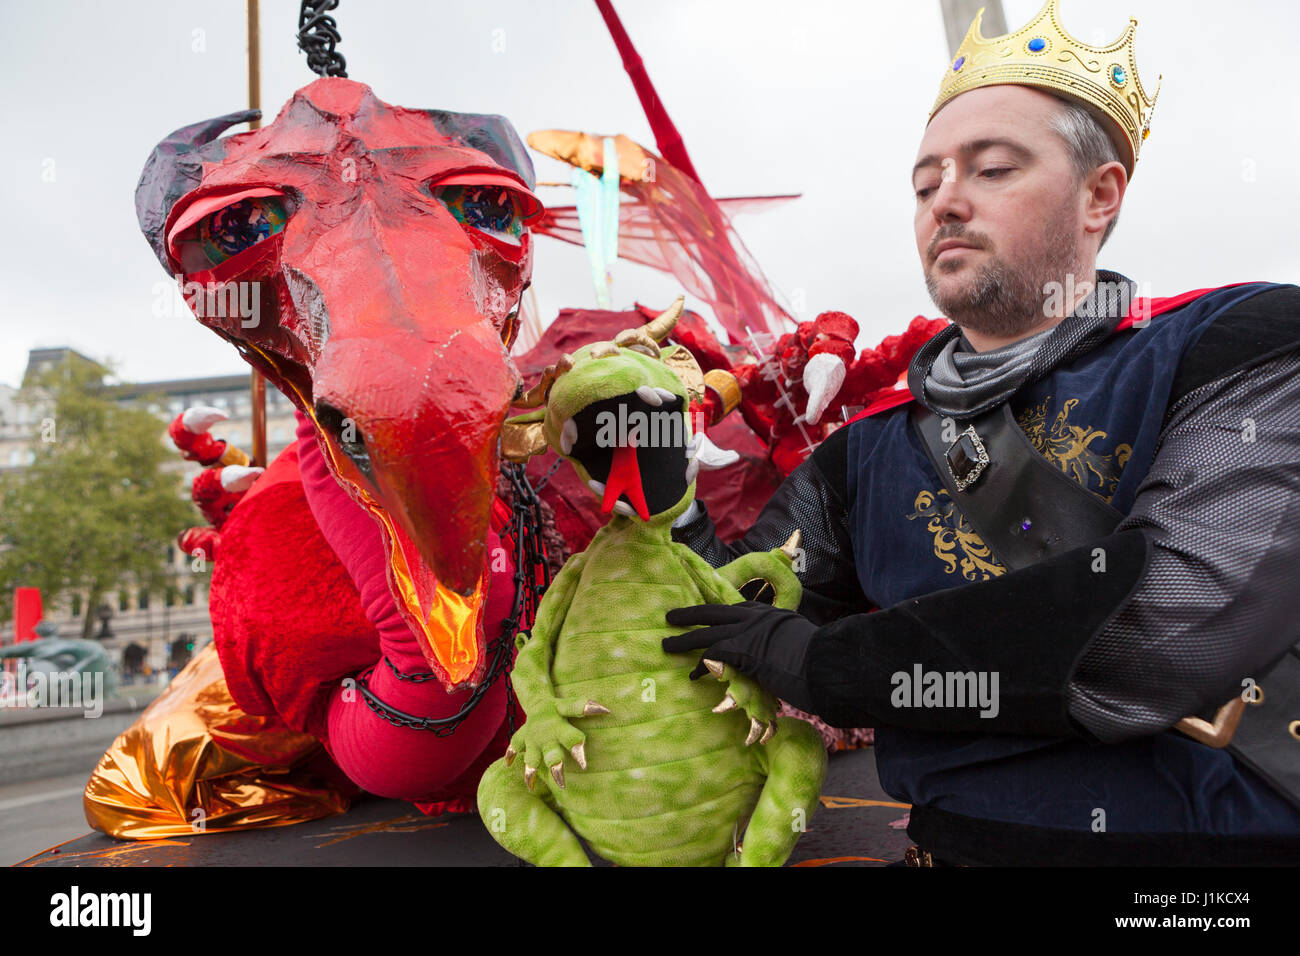 Trafalgar Square, London UK. 22 April, 2017. Feast of St. George.  Hundreds of red and white revellers celebrate Stock Photo